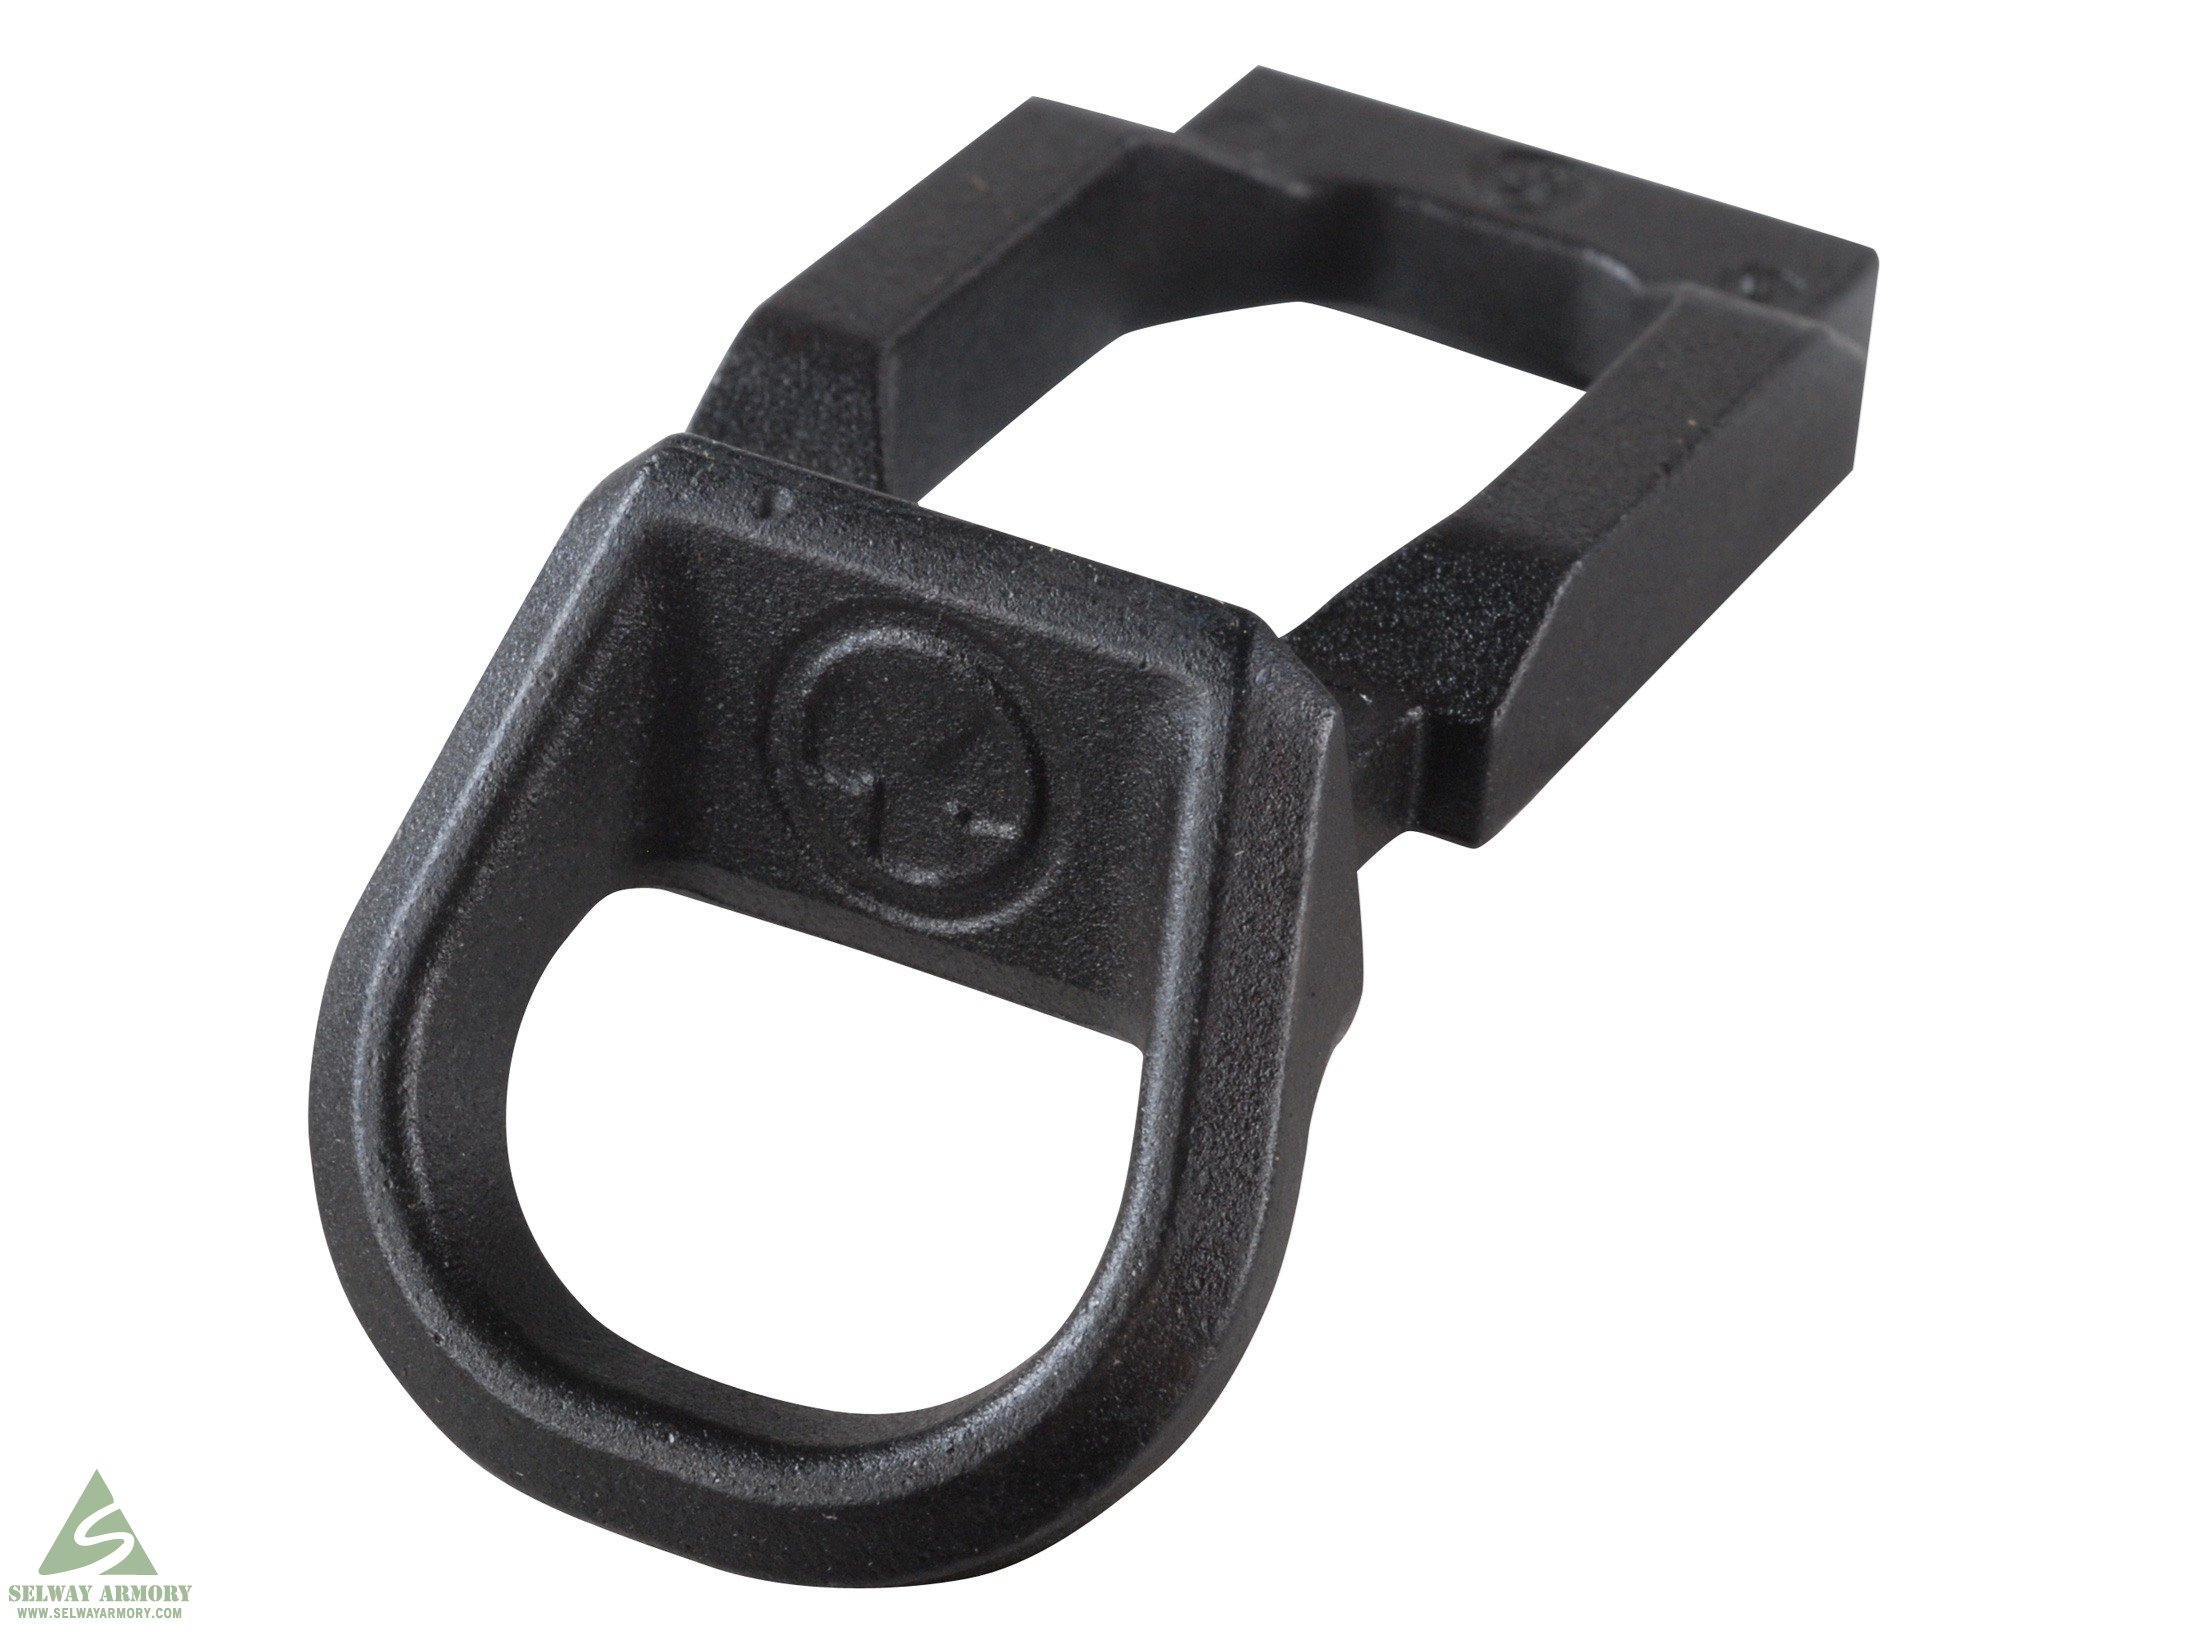 MAGPUL SGA Receiver End Plate Sling Mount Adapter for Magpul SGA Remington 870 Stock Ambidextrous Loop MAG507